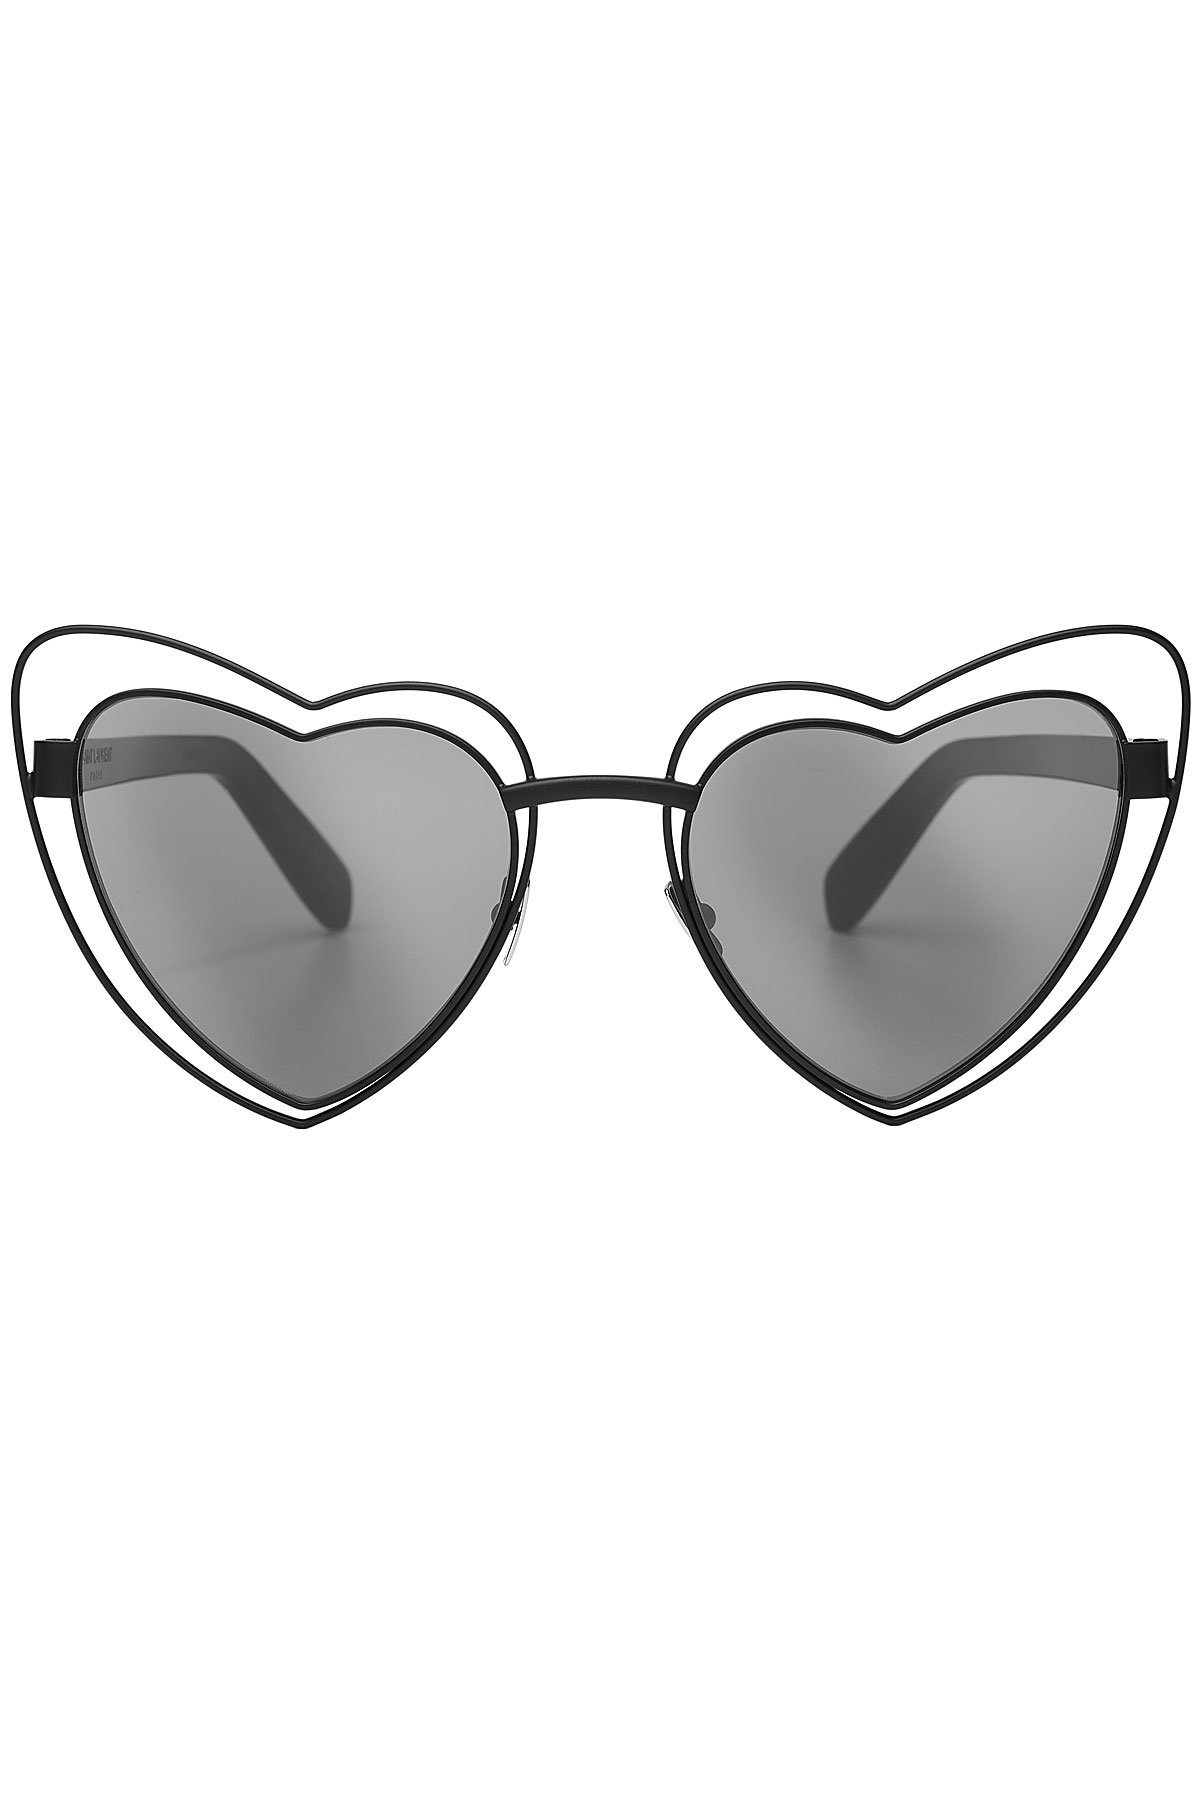 LouLou Heart Sunglasses Gr. One Size